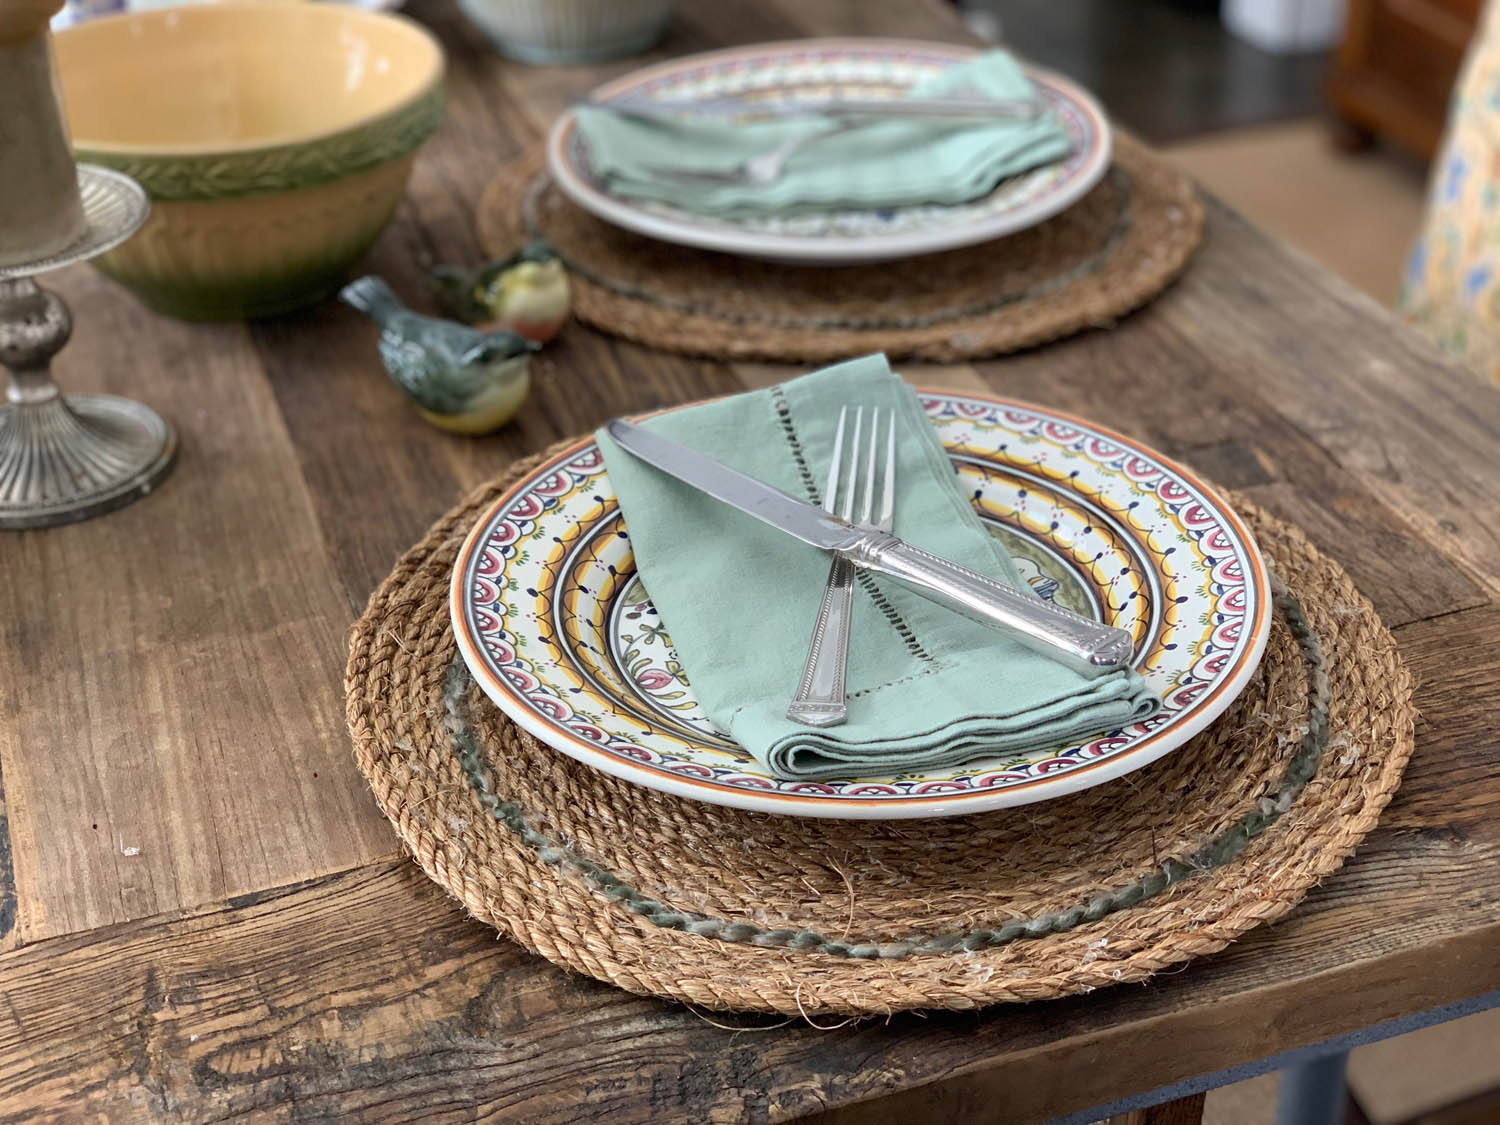 Rustic farmhouse table setting with hand made rope placemat